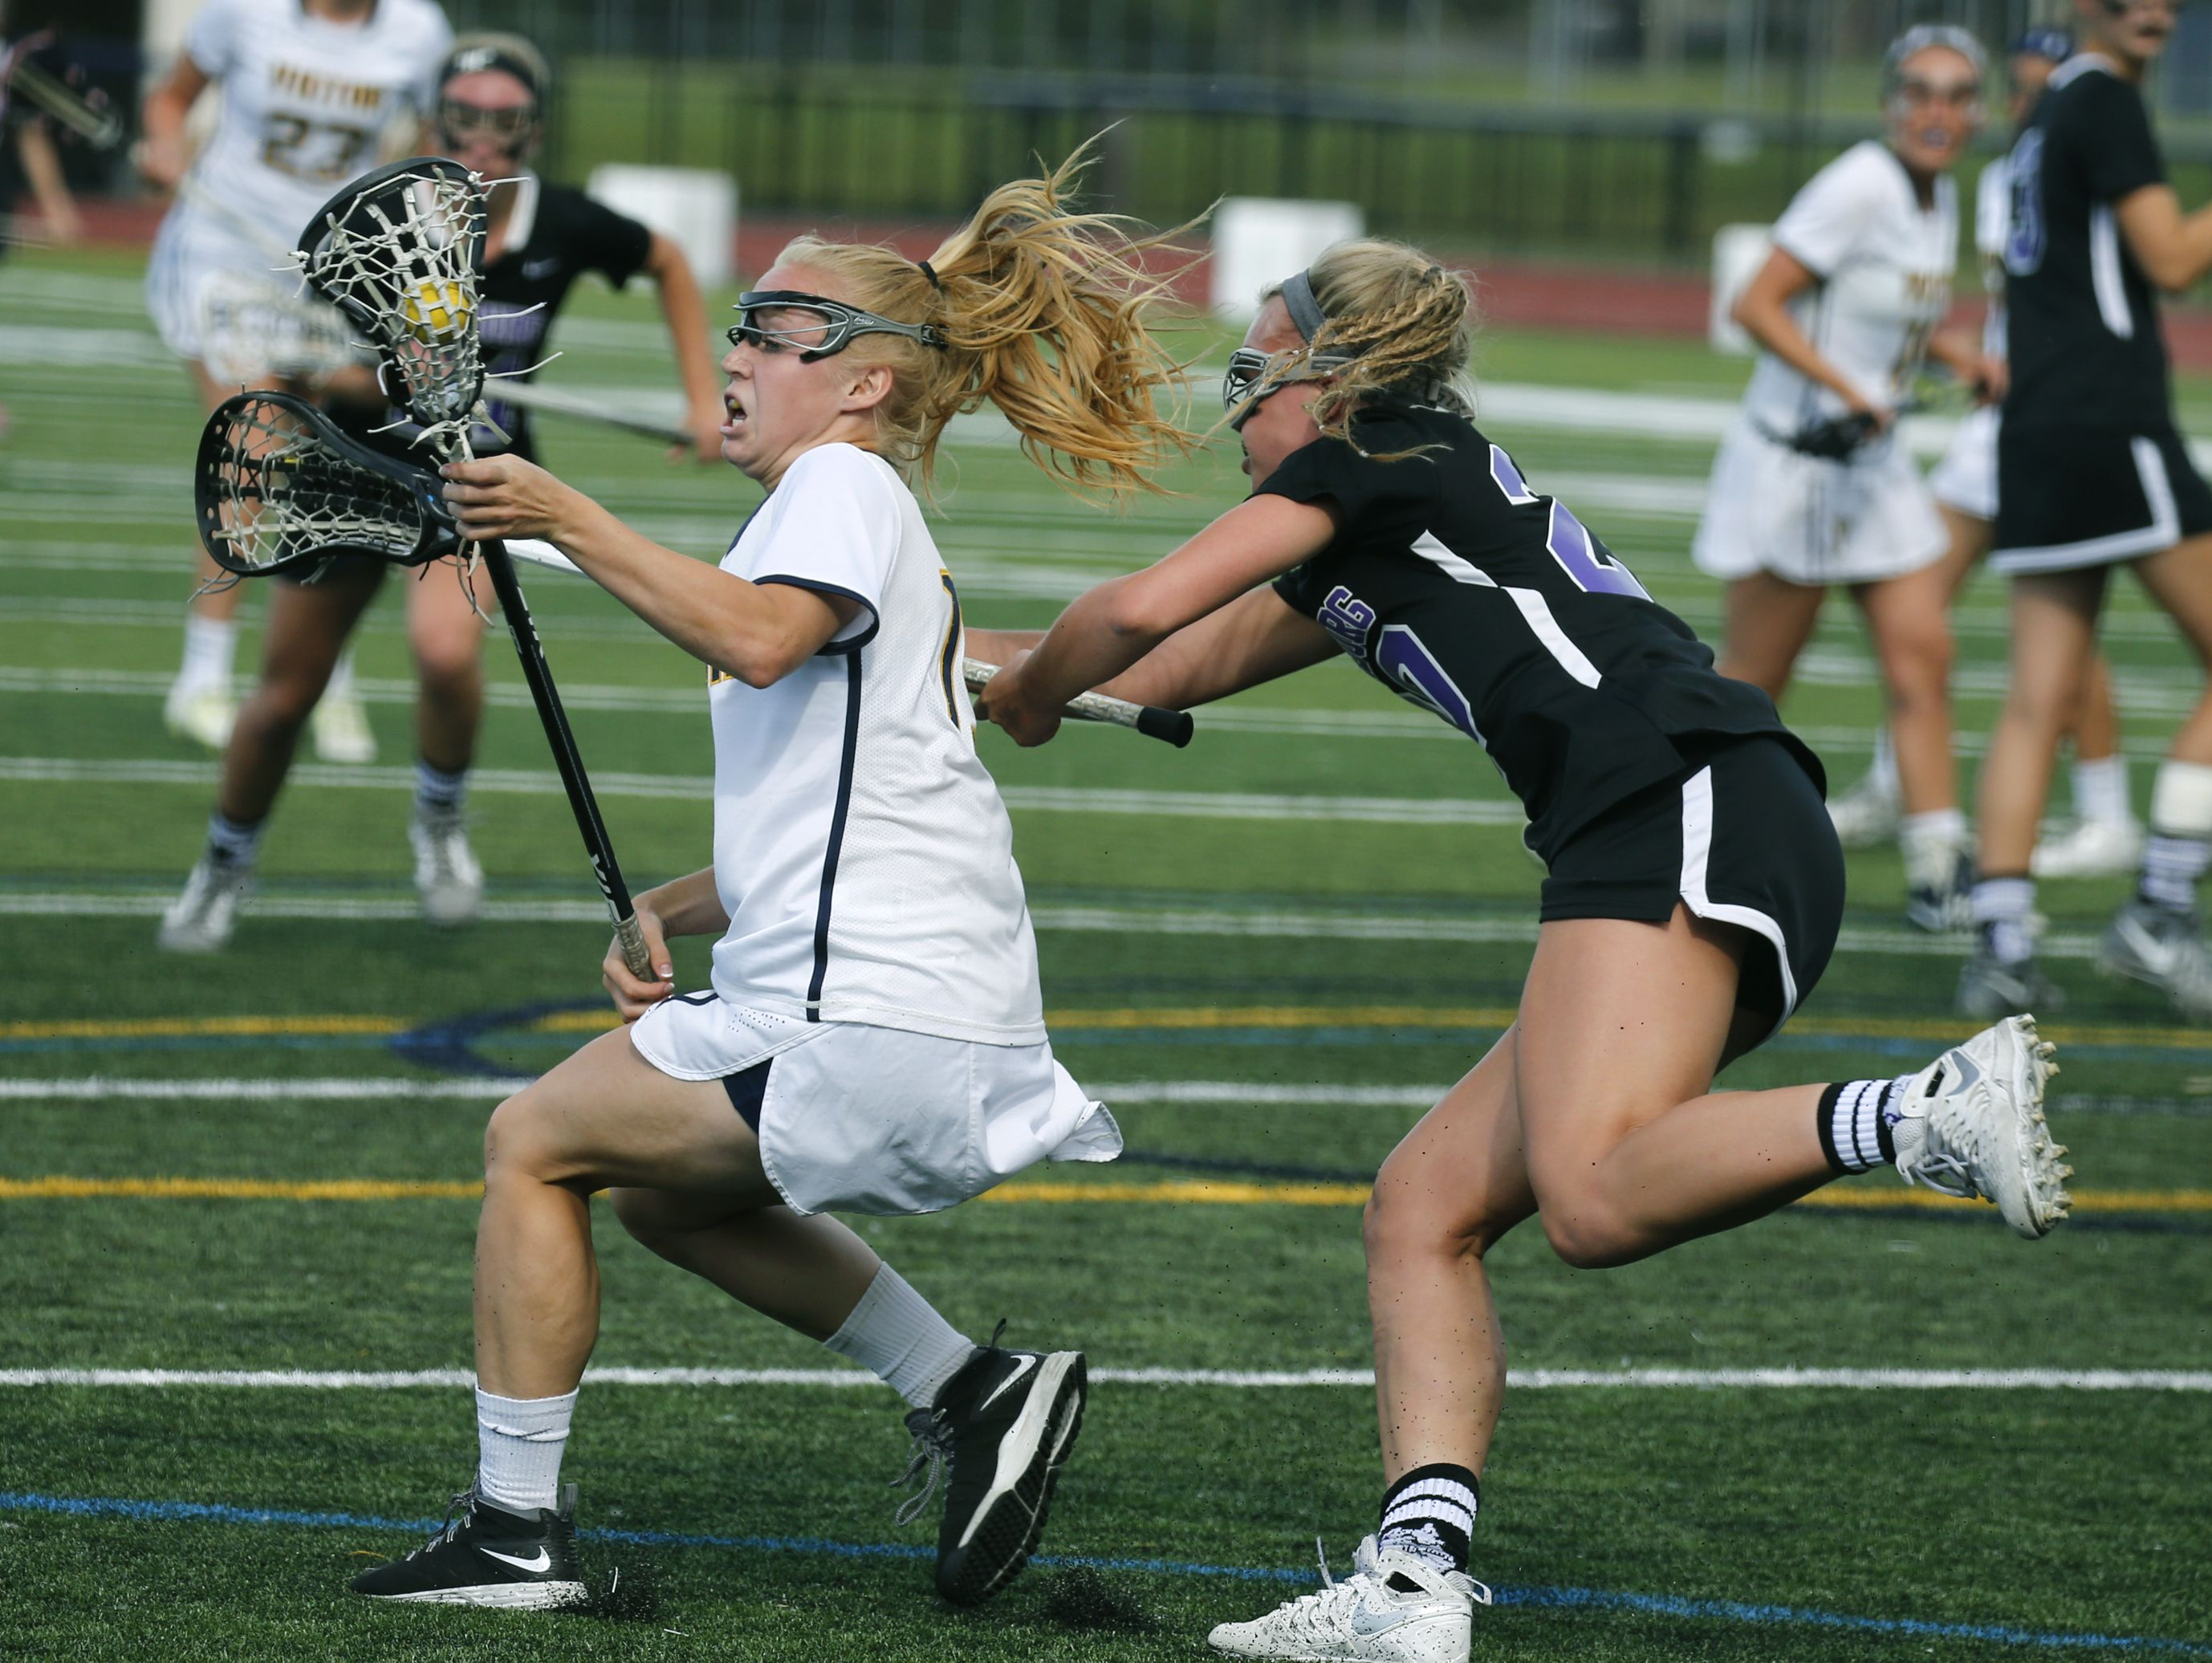 Victor's Kaci Messier under pressure from Hamburg's Julia Feuerstein in the first half at Pittsford Sutherland High School.